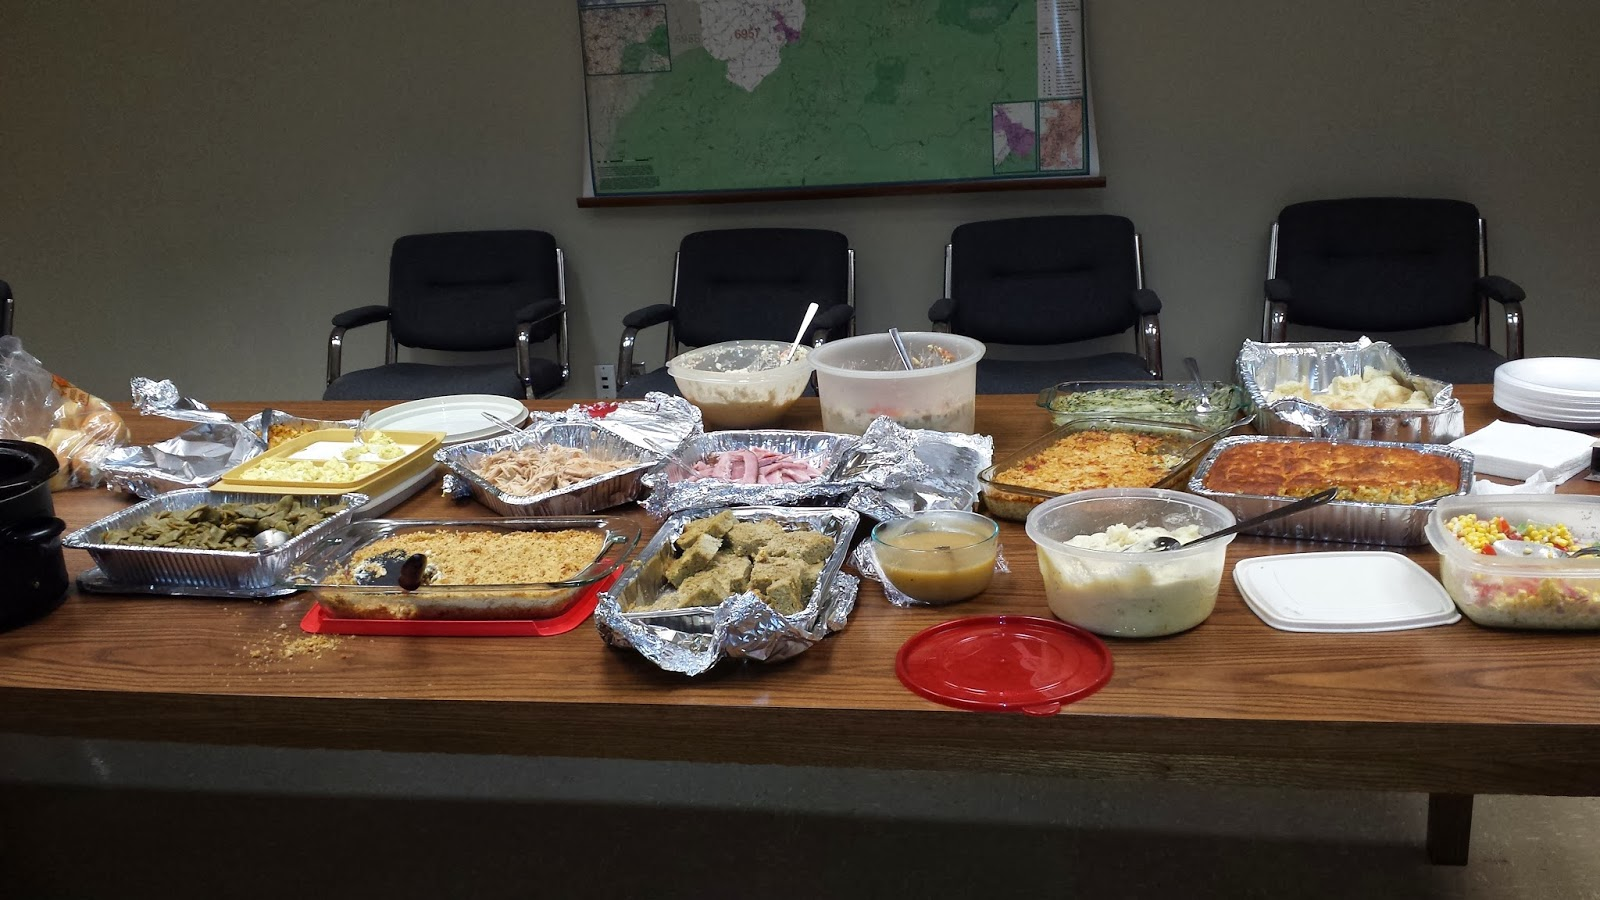 Yes. My name is m a r n a: Thanksgiving Potluck dinner at work |Thanksgiving Food For Work